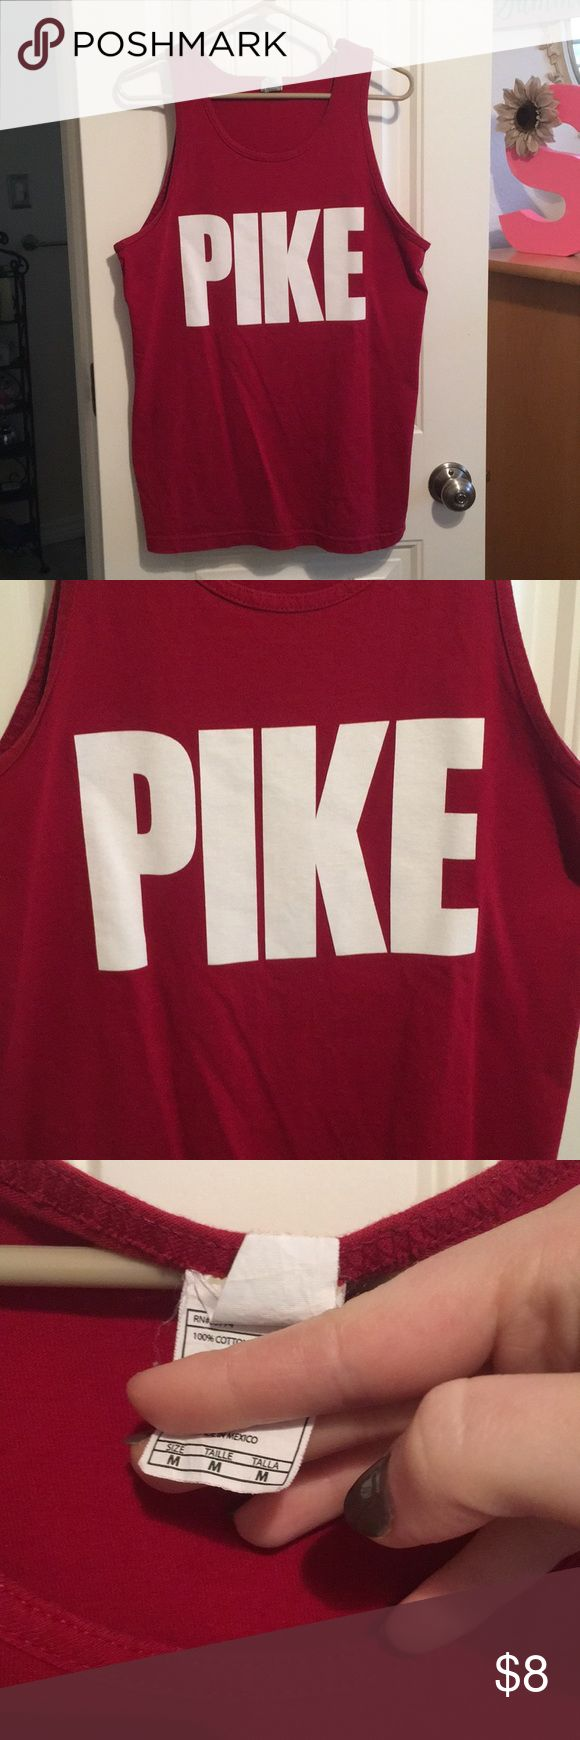 Texas A&M PIKE fraternity tank top Excellent condition! Bundle for more discounts 😊👍🏻 Shirts Tank Tops